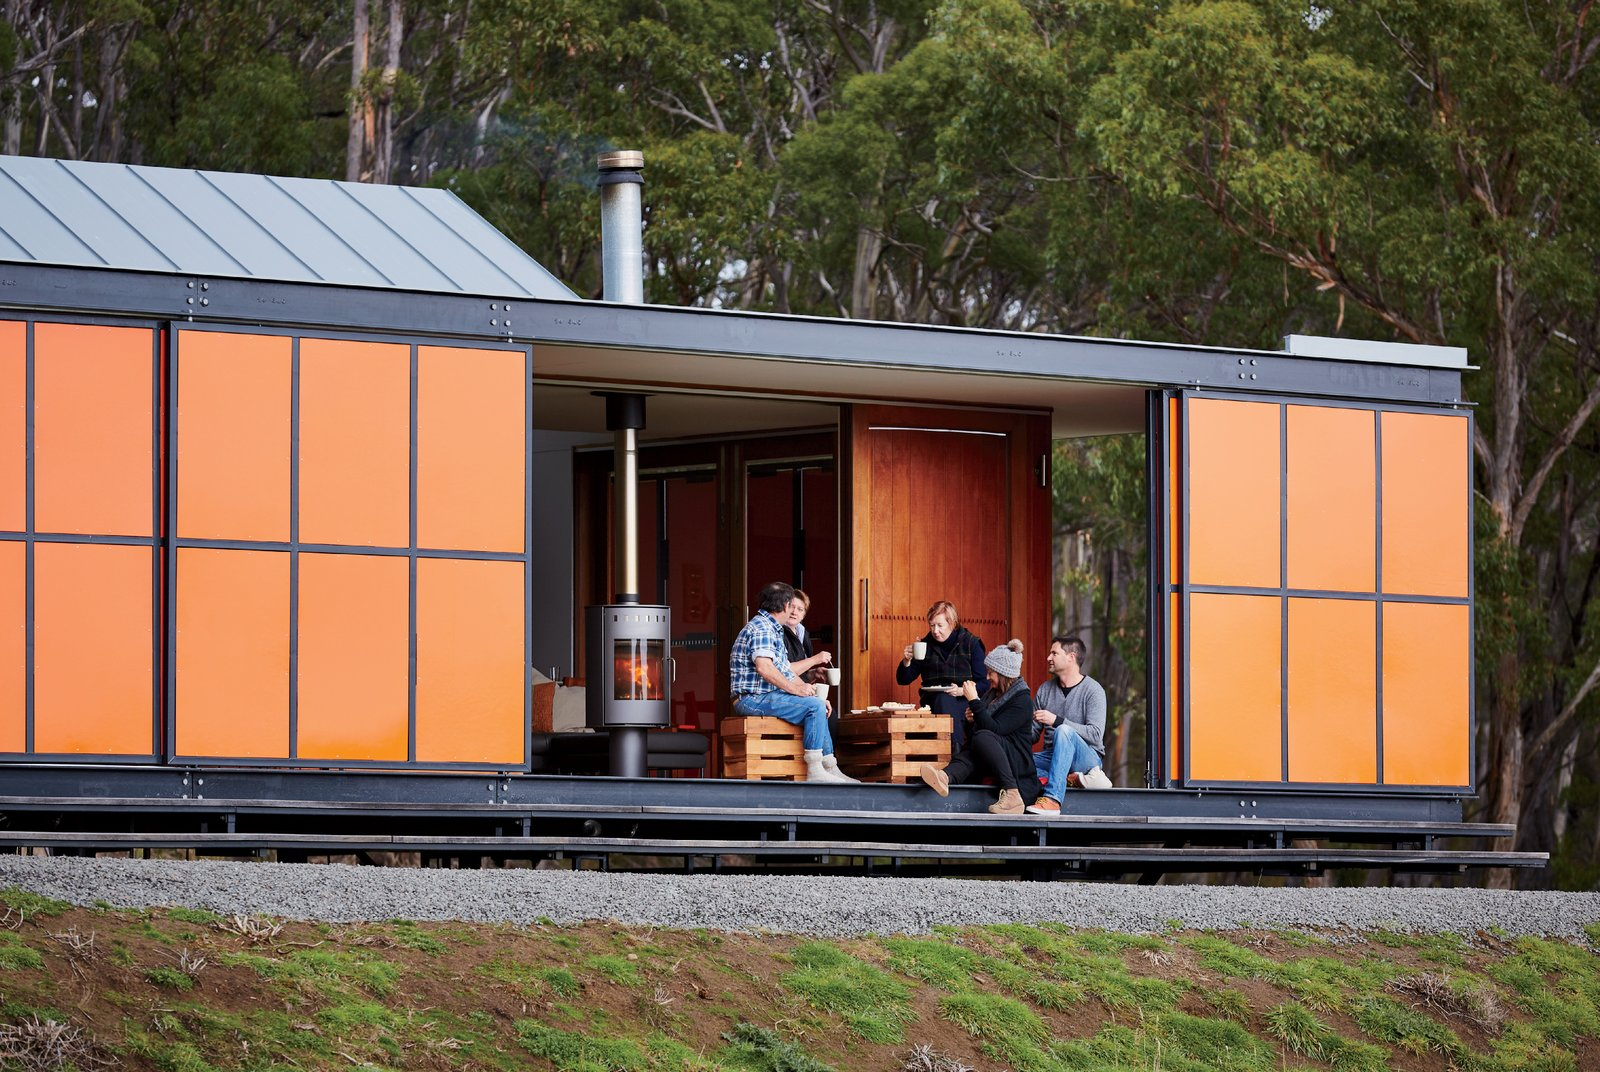 """The home was designed as a """"box within a box,"""" in which two interior structures—an open-plan living space and two en suite bedrooms—sit within its exterior envelope. Inspired by the region's fiery orange lichen and the indigenous waratah shrub's bright flowers, the colorful exterior panels are made of heavy-duty galvanized steel to guard from Tasmanian winds, which can reach up to 60 miles per hour."""